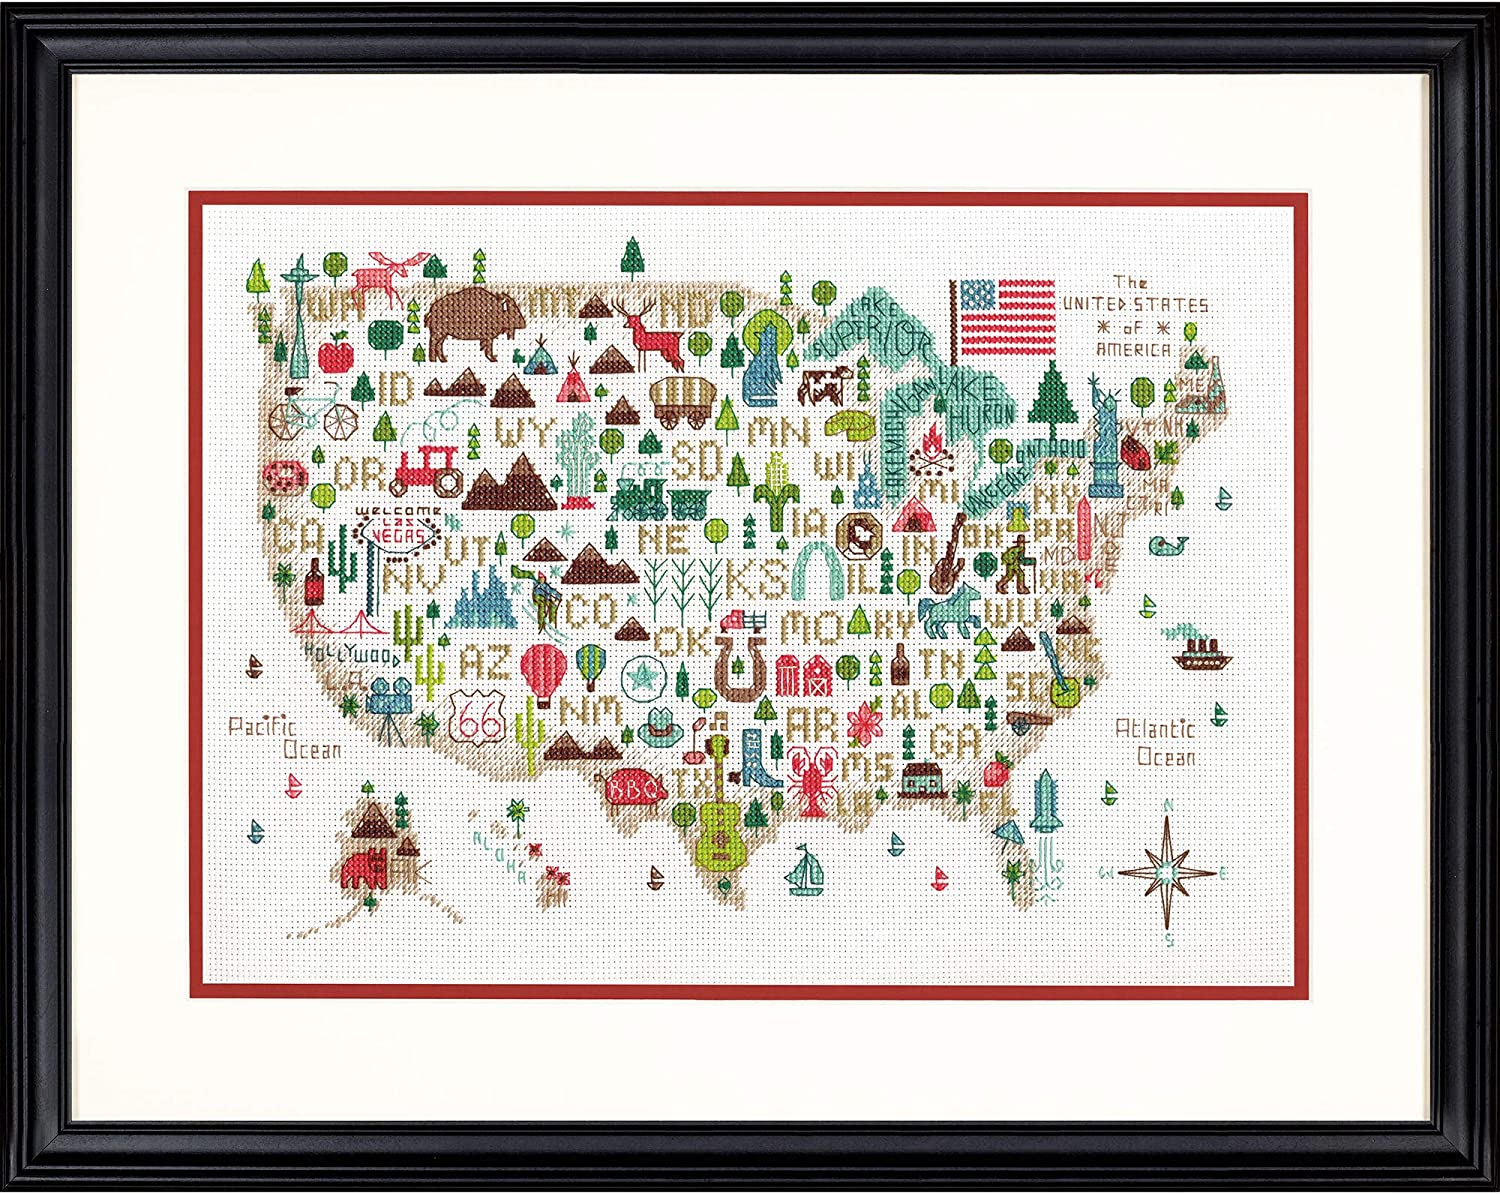 Dimensions Counted Cross Stitch Kit for Beginners 14 Count White Aida State Love 50 States USA Cross Stitch 6